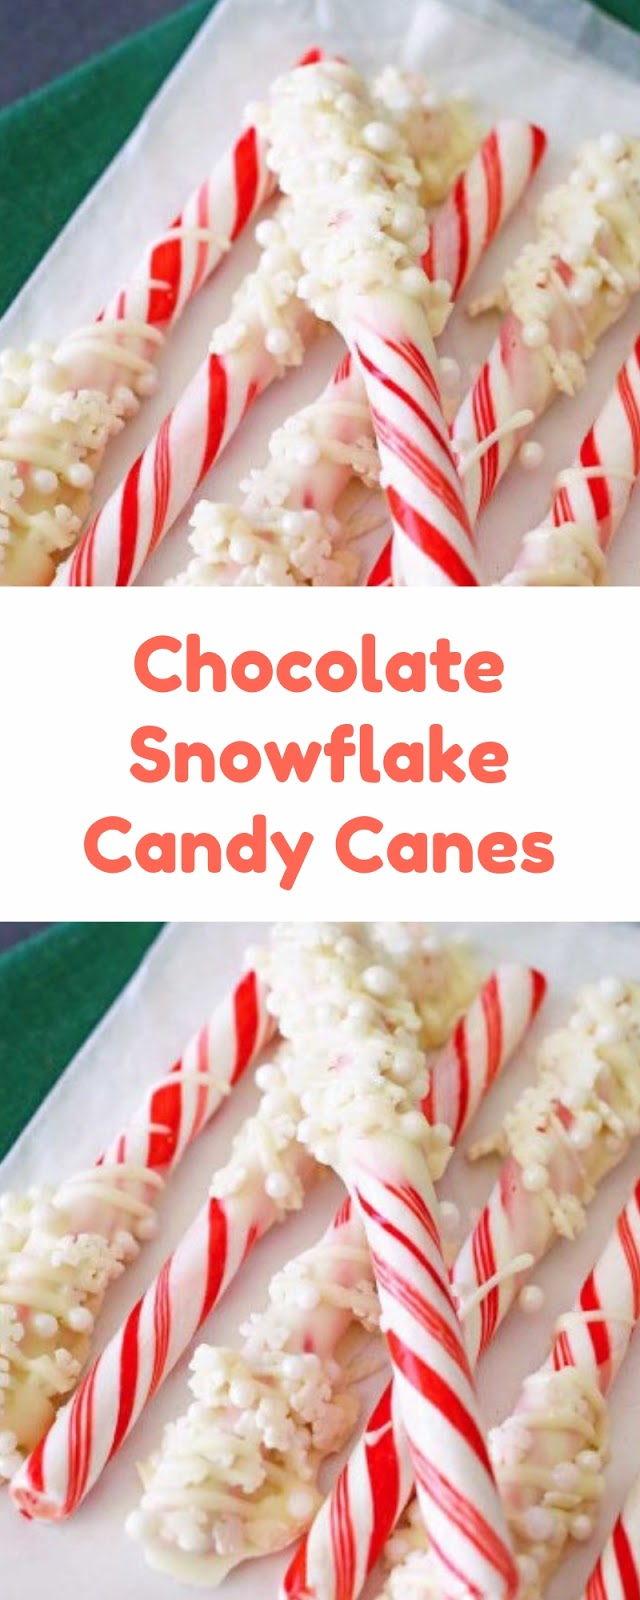 Chocolate Snowflake Candy Canes